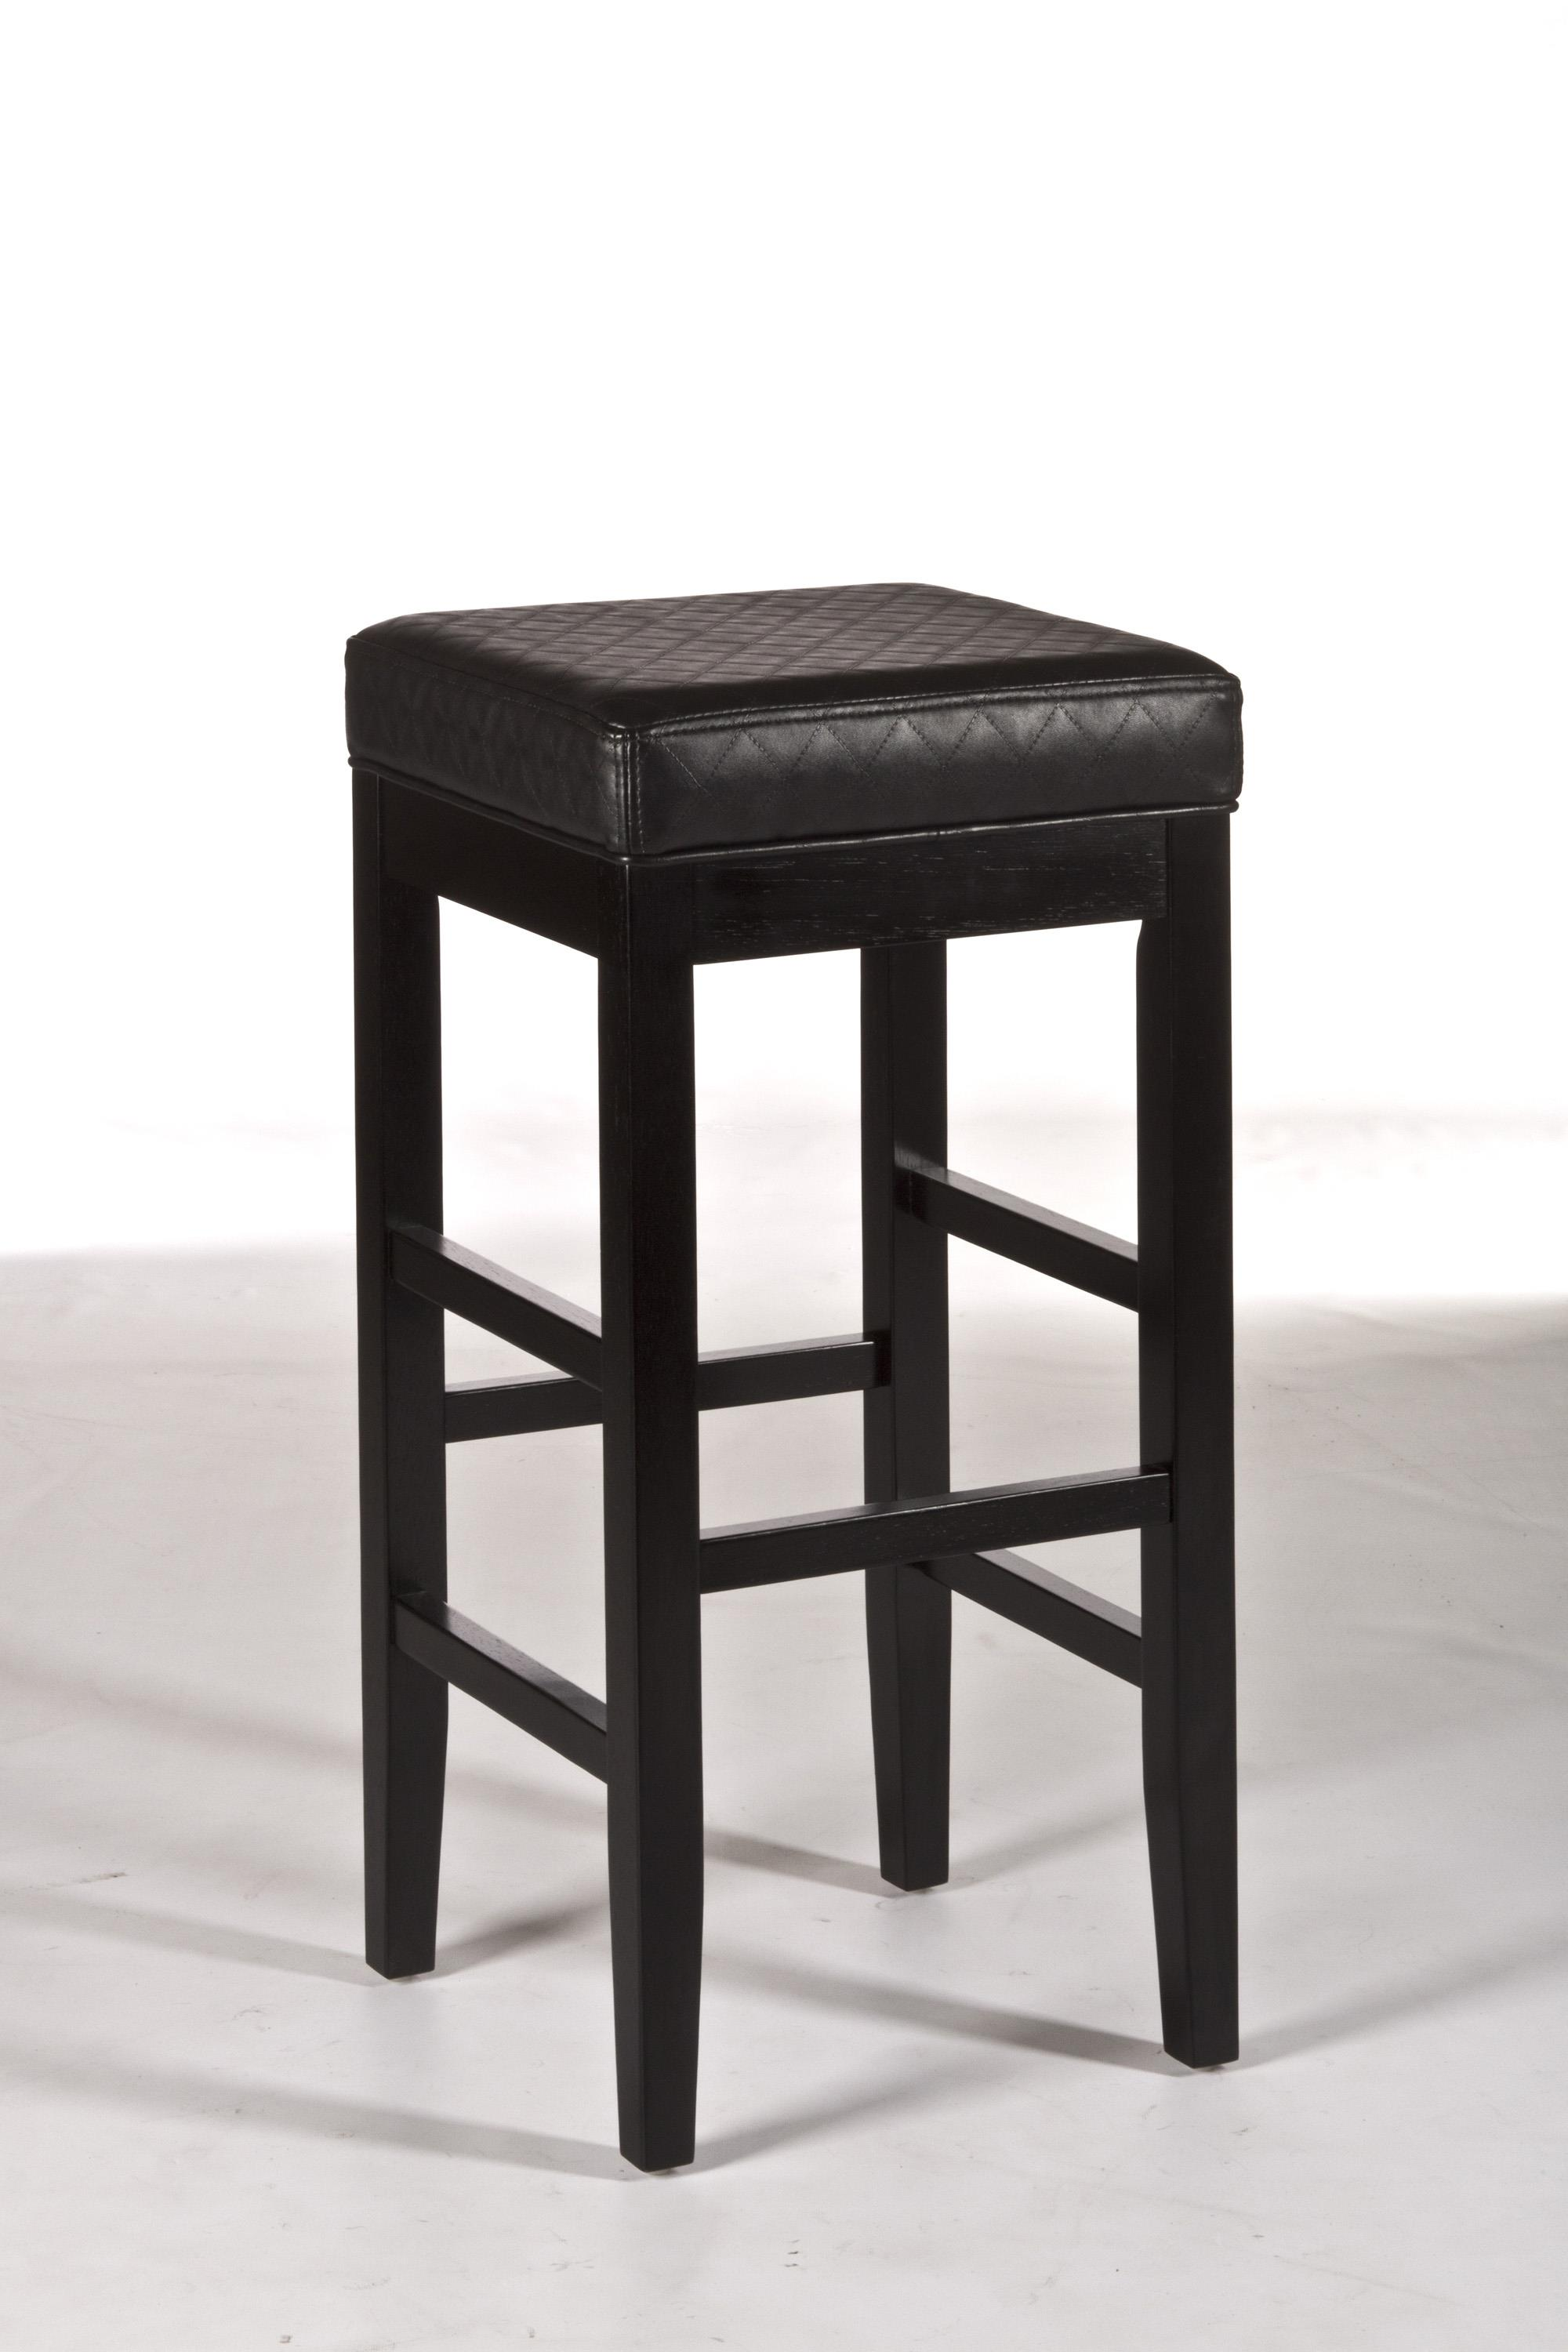 Hillsdale Backless Bar Stools Hammond Backless Bar Stool - Item Number: 5157-831